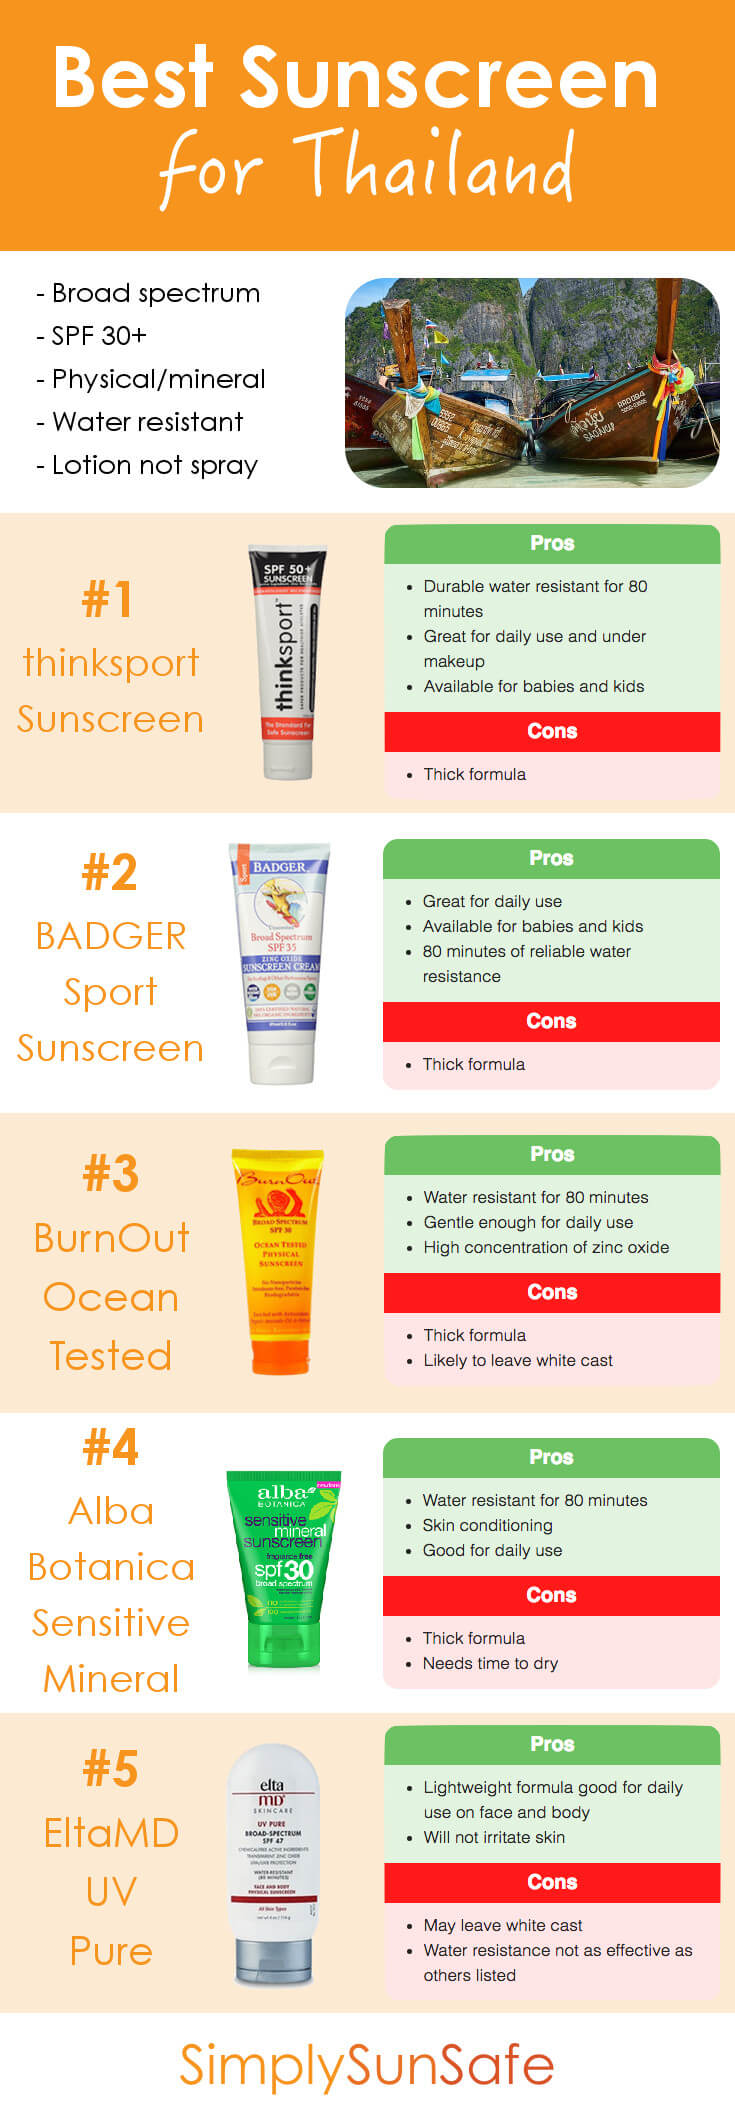 Best Sunscreen for Thailand Pinterest